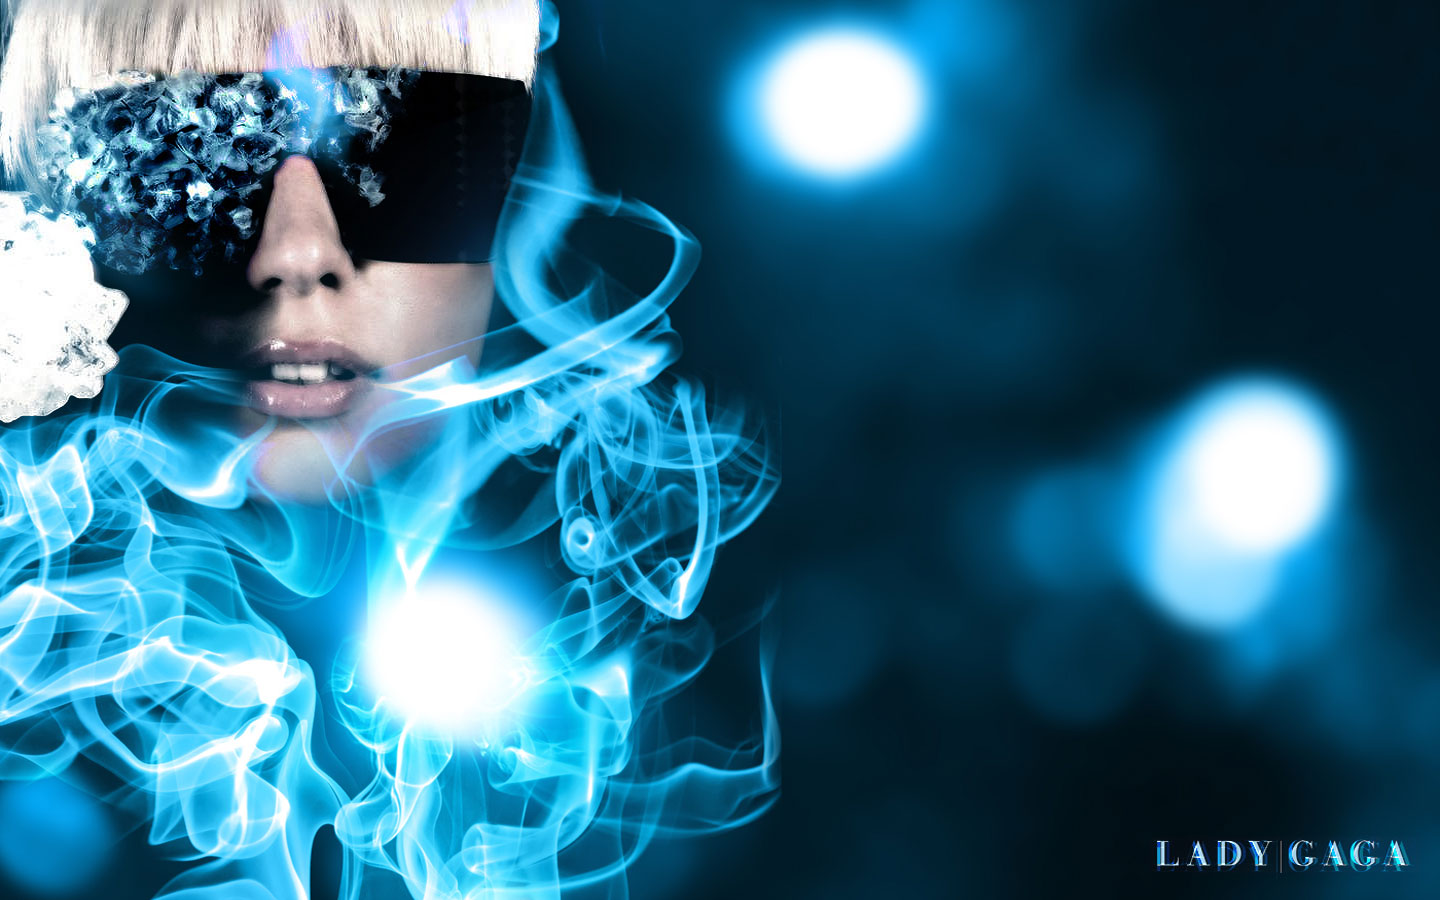 lady gaga latest photographs of 2012 hdpixels